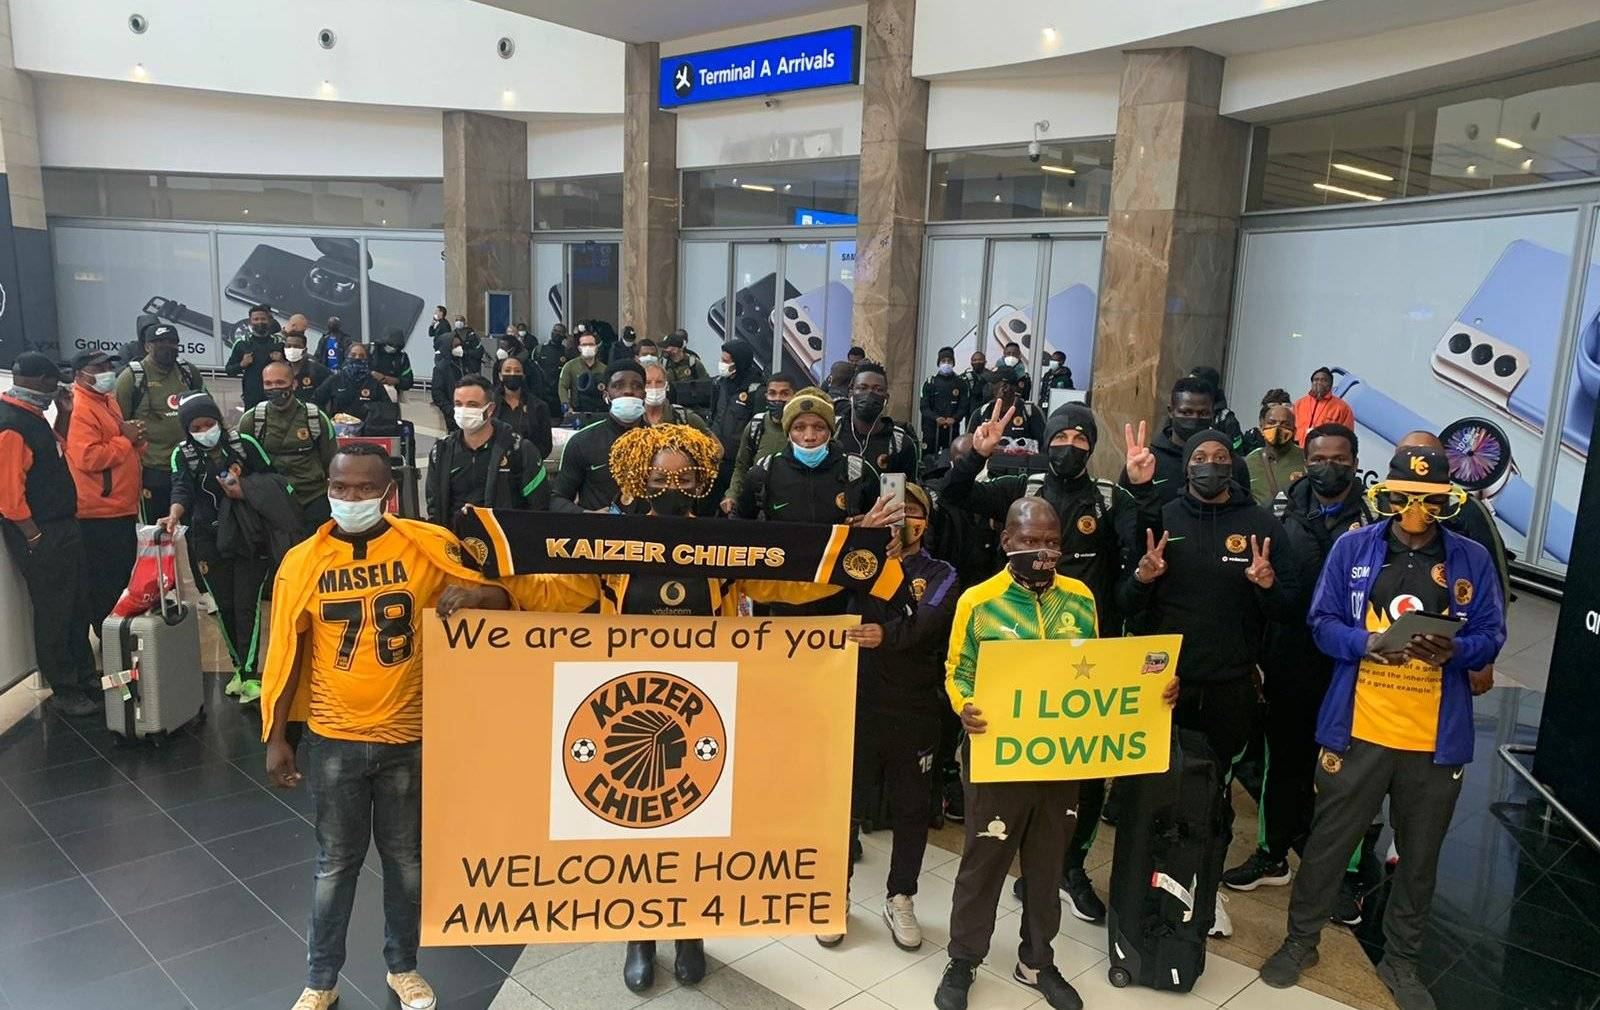 Kaizer Chiefs players finally due to arrive home